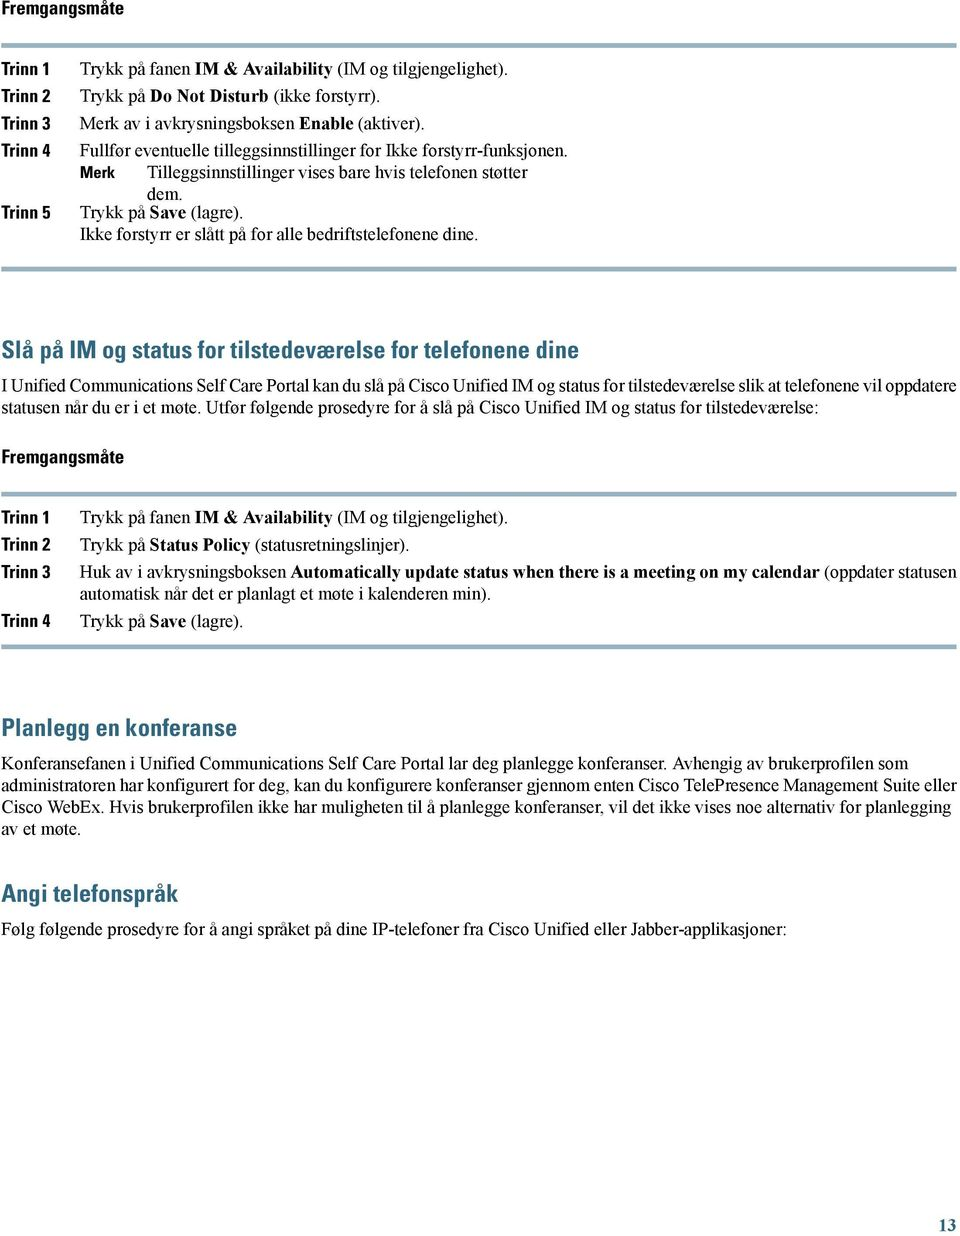 Slå på IM og status for tilstedeværelse for telefonene dine I Unified Communications Self Care Portal kan du slå på Cisco Unified IM og status for tilstedeværelse slik at telefonene vil oppdatere